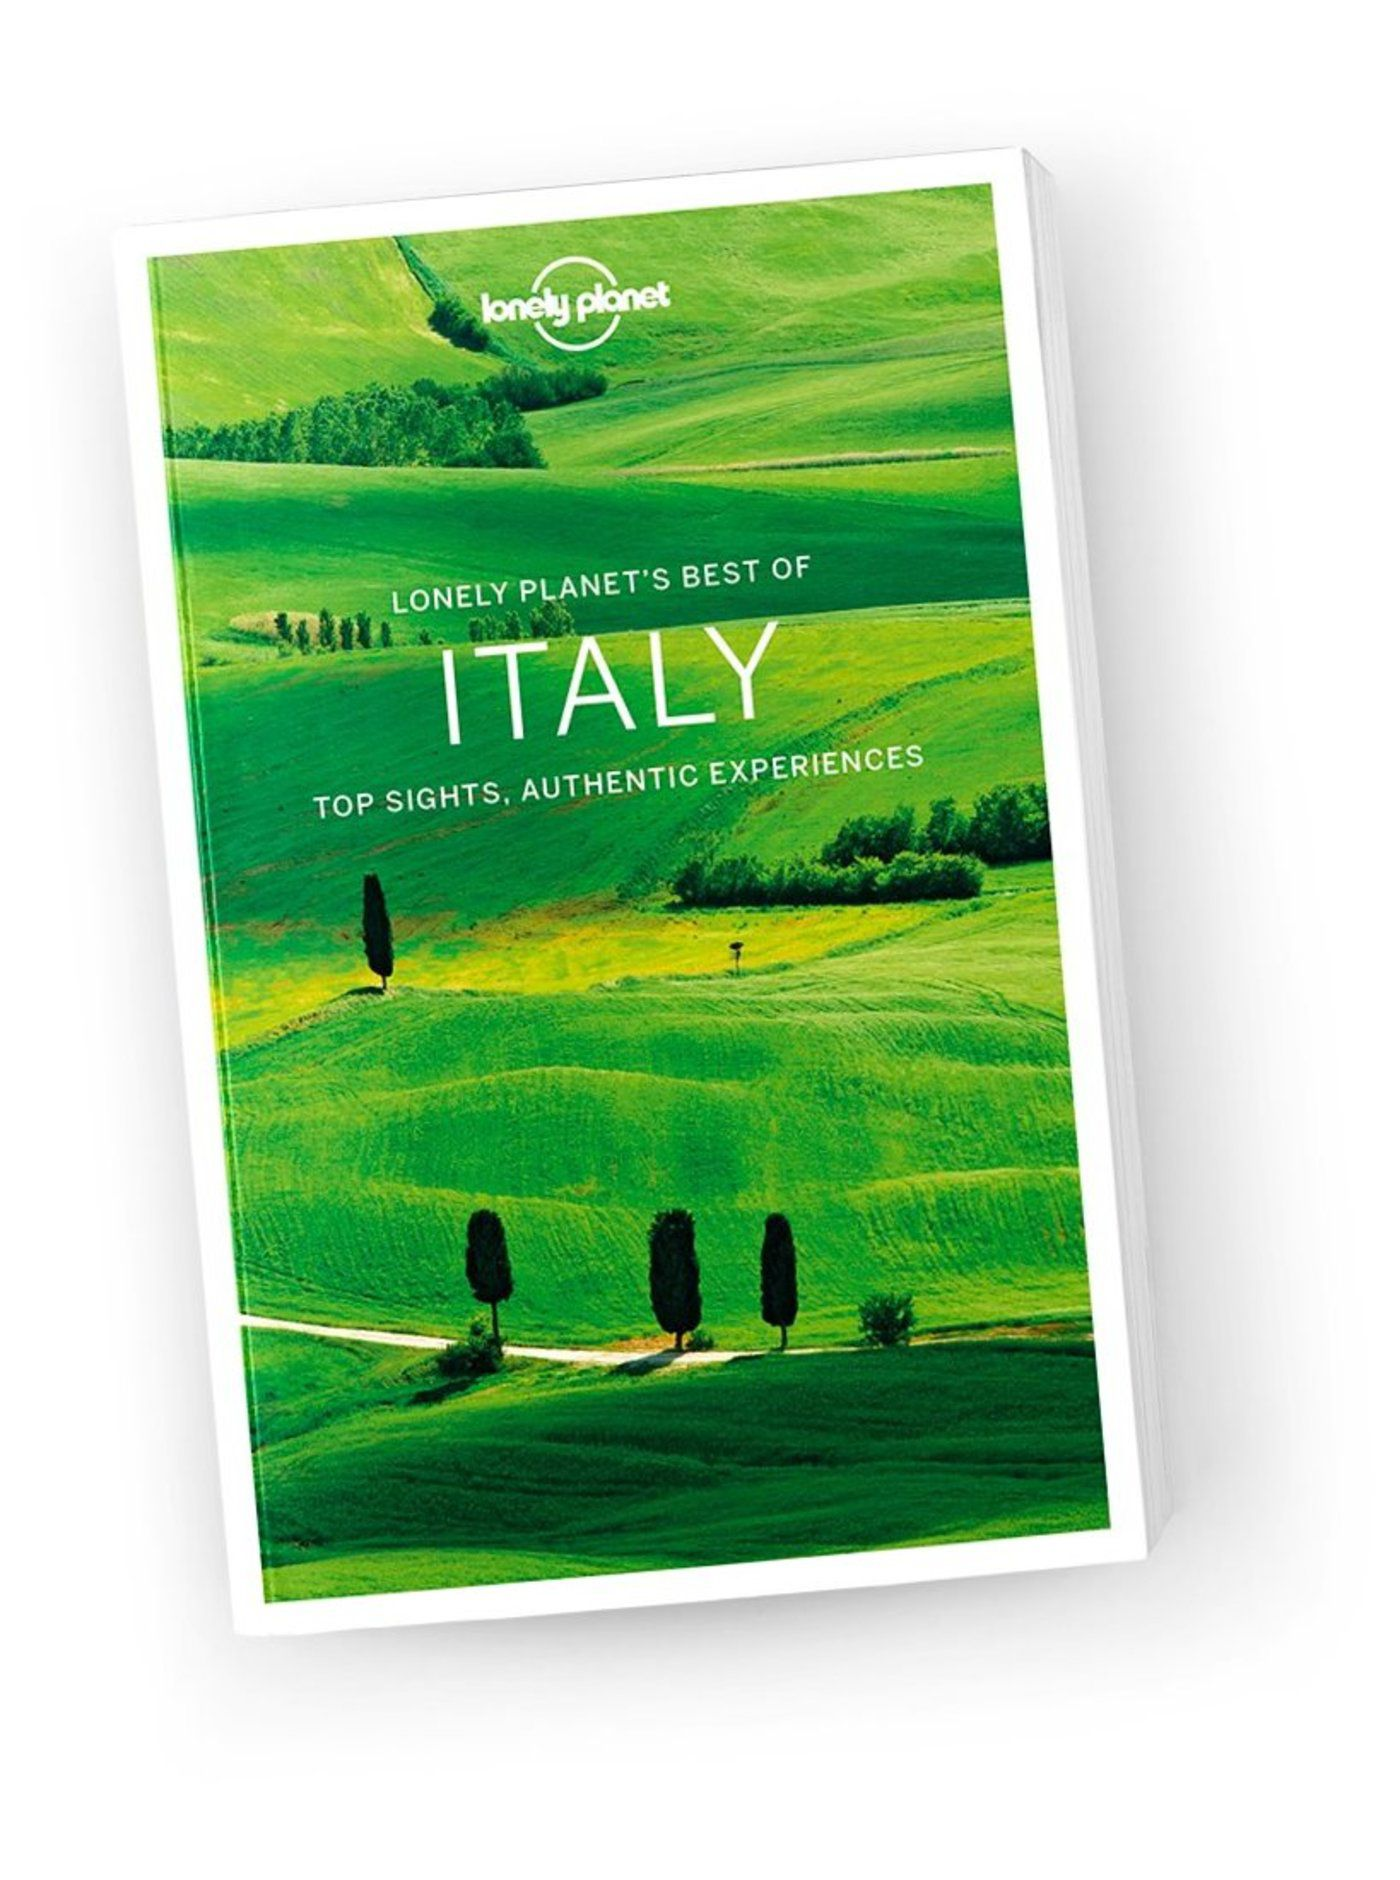 Best of Italy travel guide - 3rd edition